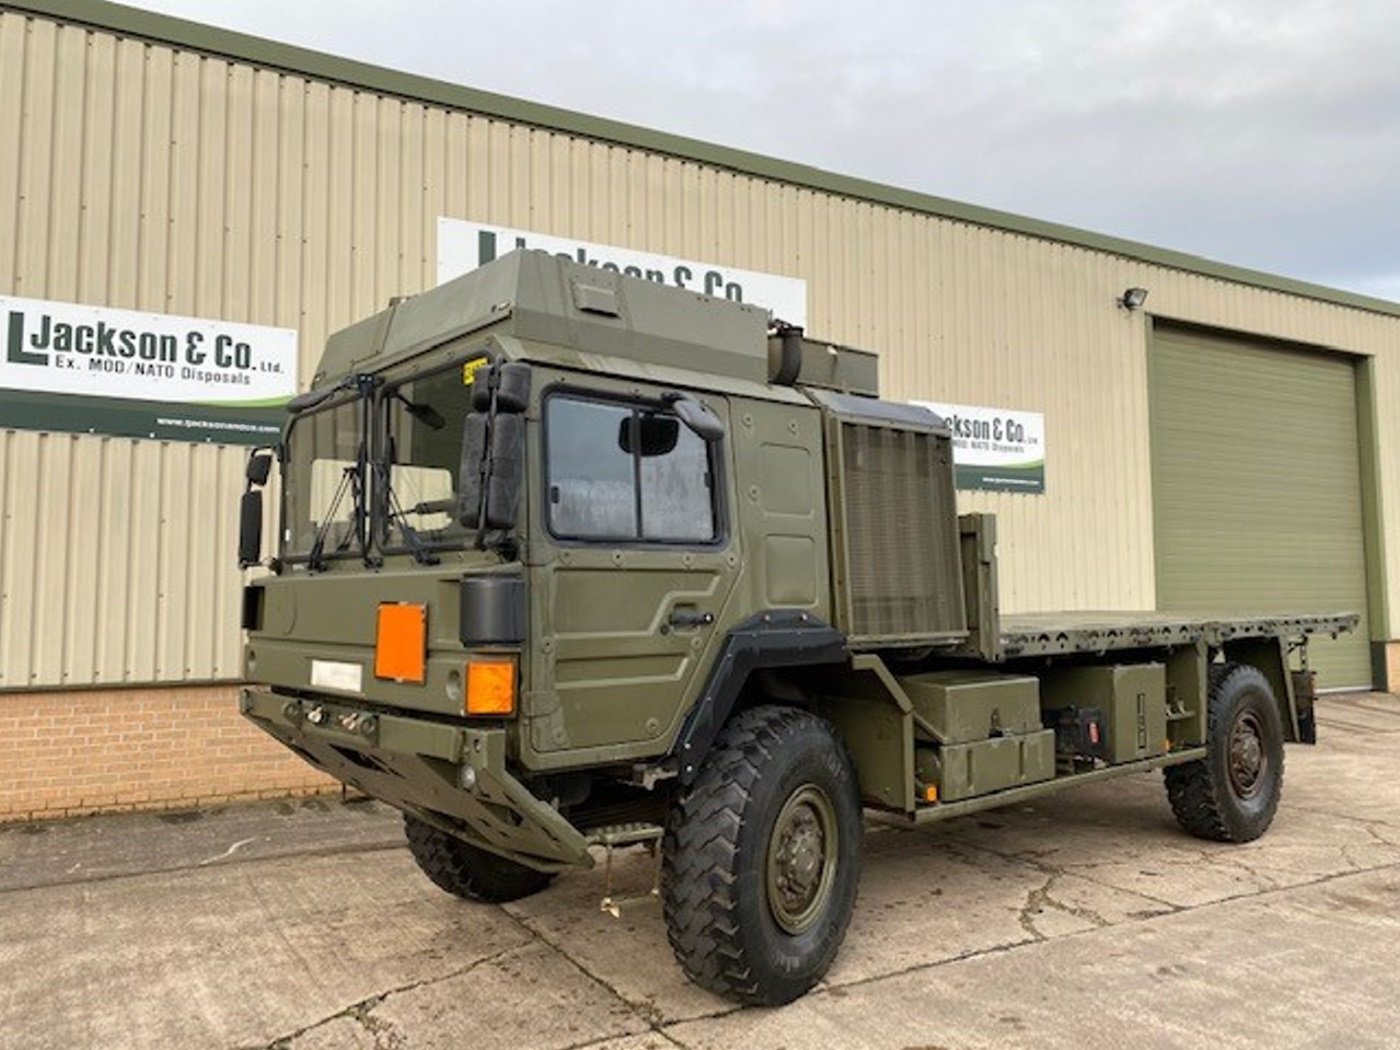 MAN HX60 18.330 4x4 Flat Bed Cargo Truck for sale | military vehicles